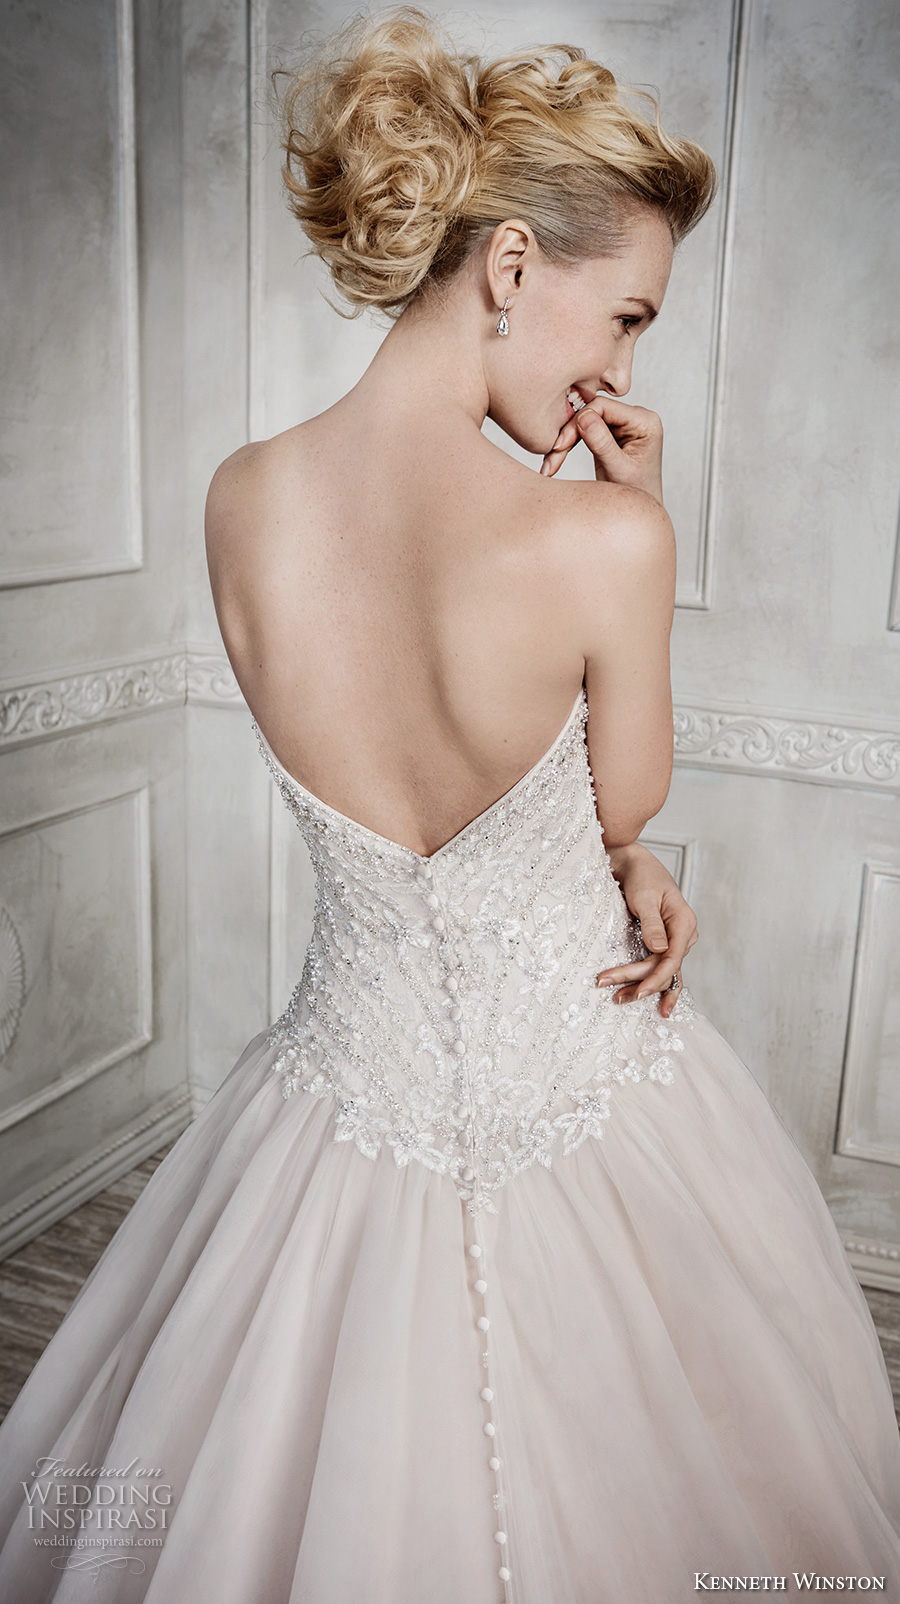 kenneth winston fall 2016 bridal strapless sweetheart neckline heavily embellished bodice champagne color princess a line wedding dress chapel train (1671) zbv